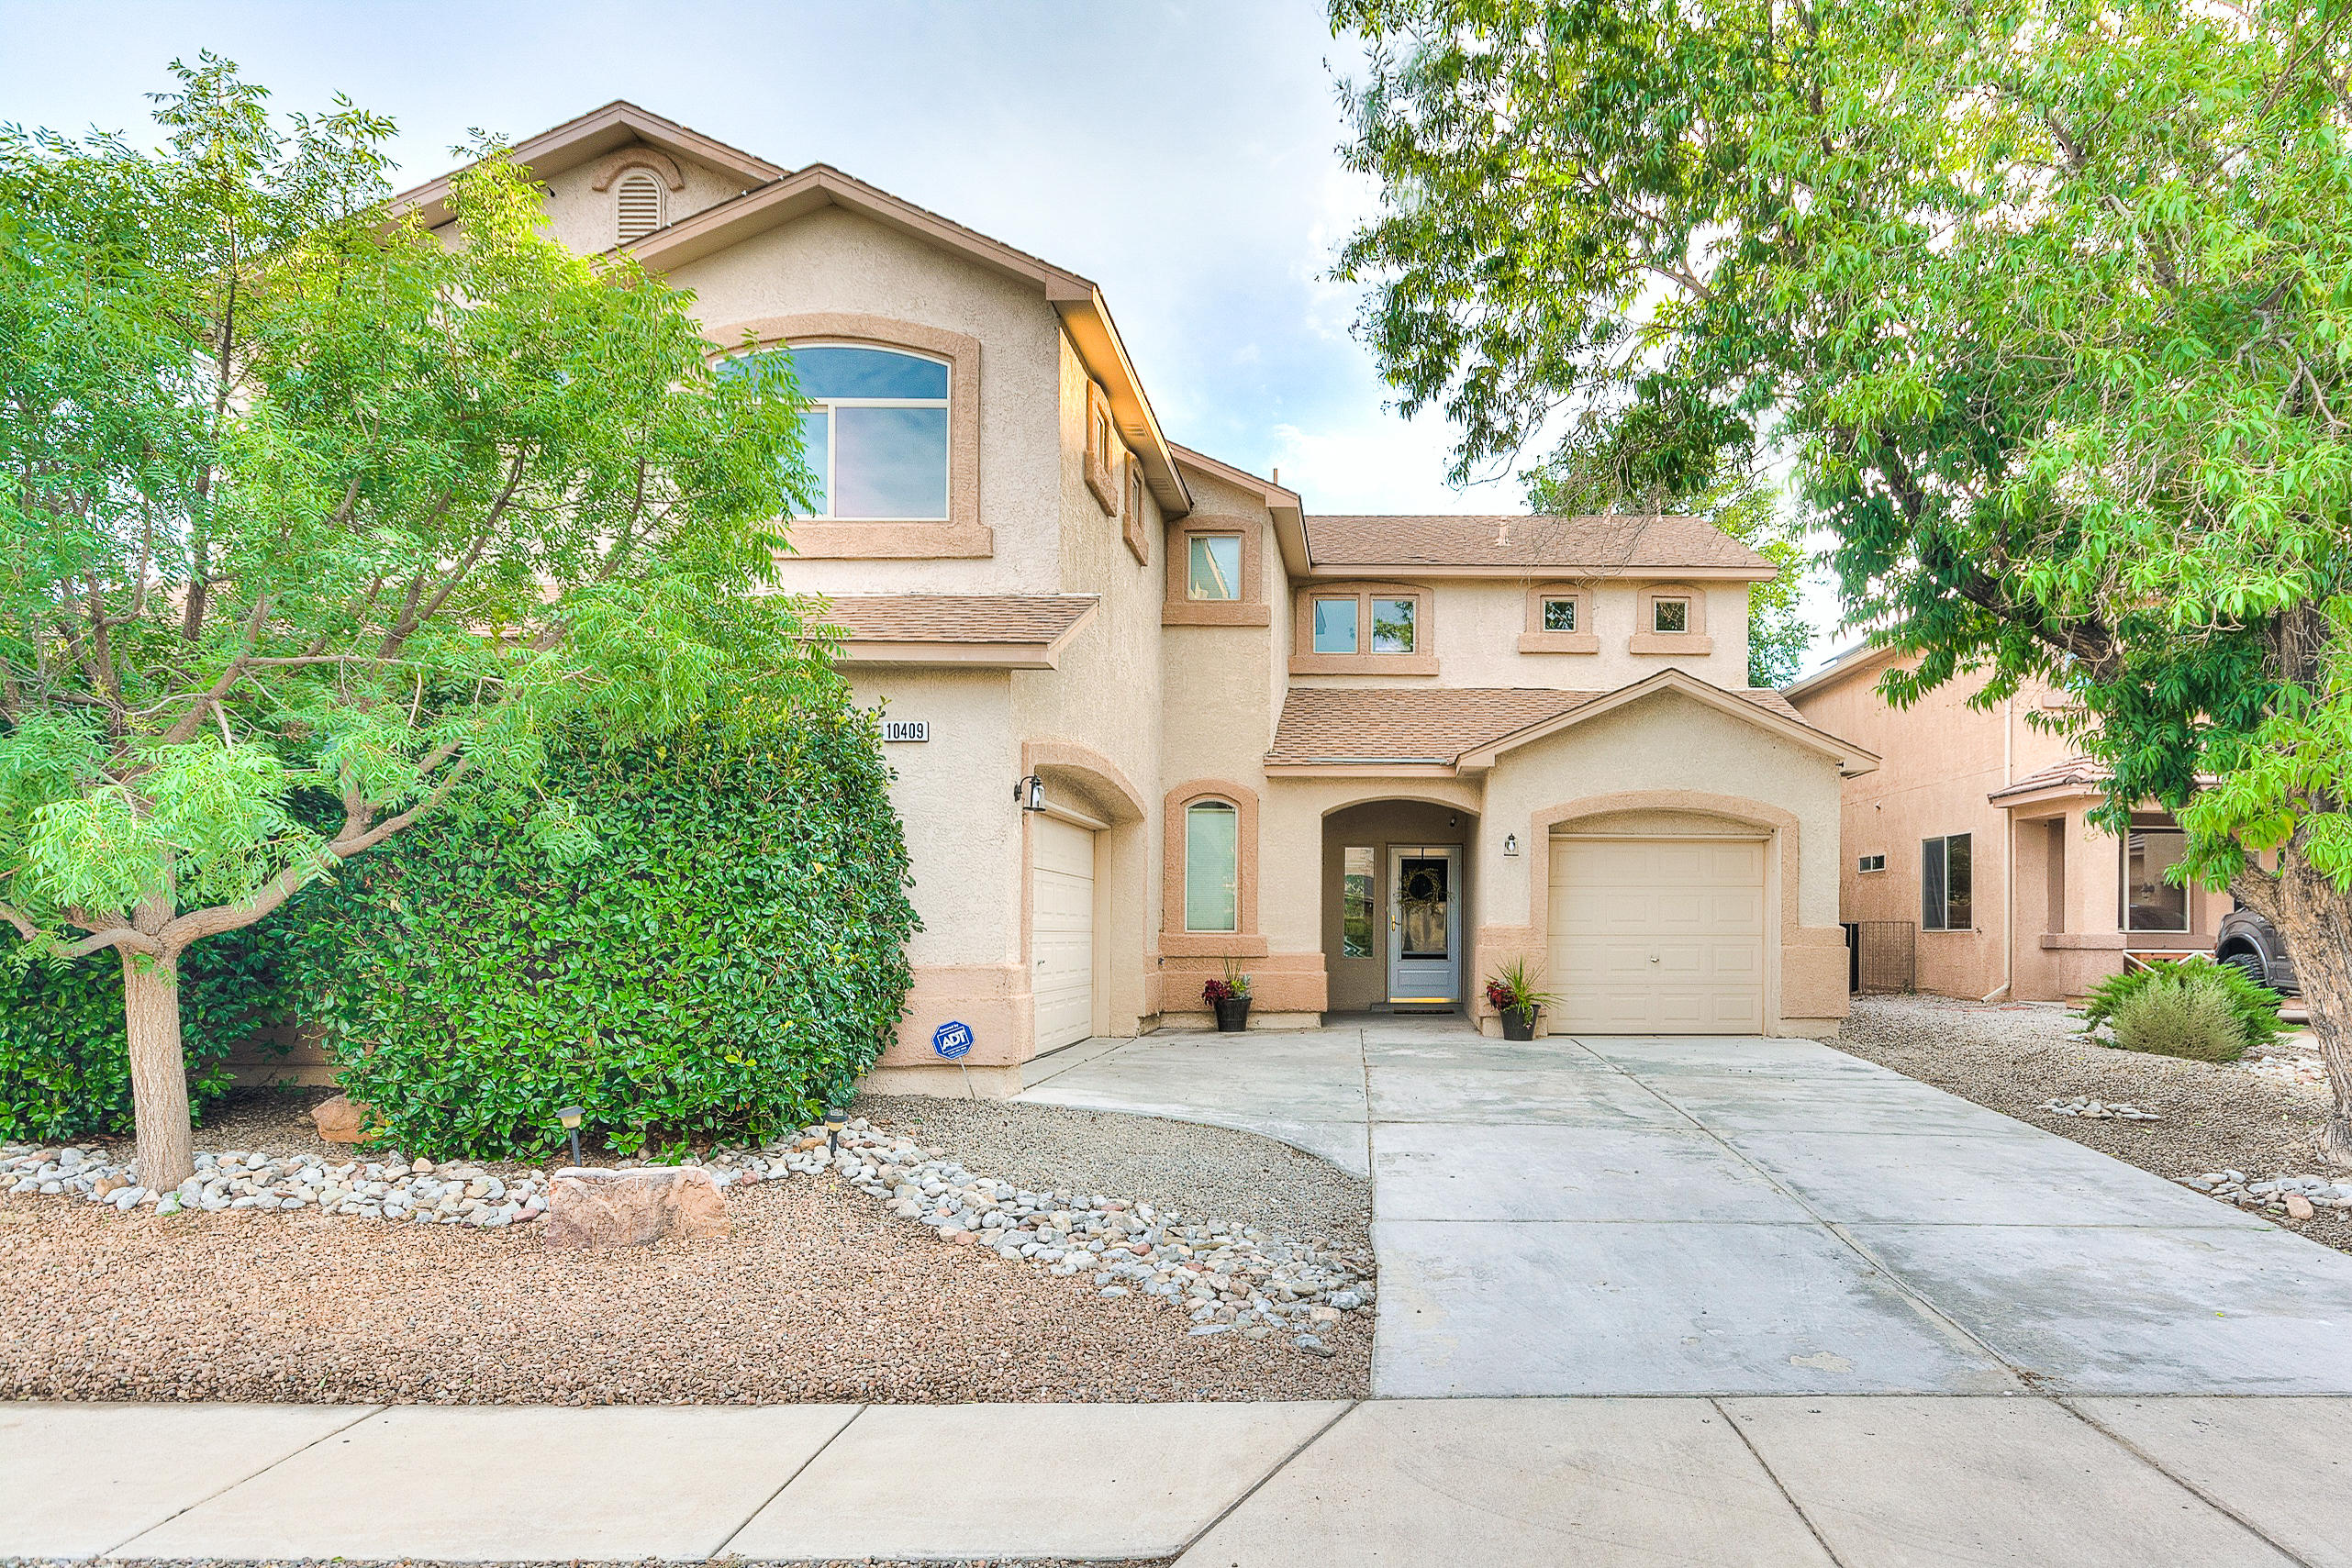 This spacious beautiful home is in the master-planned community of Ventana West.  It has been recently upgraded with new flooring, room turned into office, kitchen backsplash and hardware, and master bath flooring and hardware.  Beautiful foyer with tall ceilings welcomes you into a formal dining/living and office.  The kitchen has stainless steel appliances, island, bar seating, and opens to the family room with a cozy fireplace, and built-in shelves.  All bedrooms are upstairs with a large loft and balcony.  HUGE master suite with vaulted ceilings, fireplace,  jetted tub and shower, and his and hers walk-in closets.  The home has refrigerated air and 3 car garage!  The backyard has a covered patio, extended flagstone patio, mature trees and raised beds.  Park and walking trails nearby!